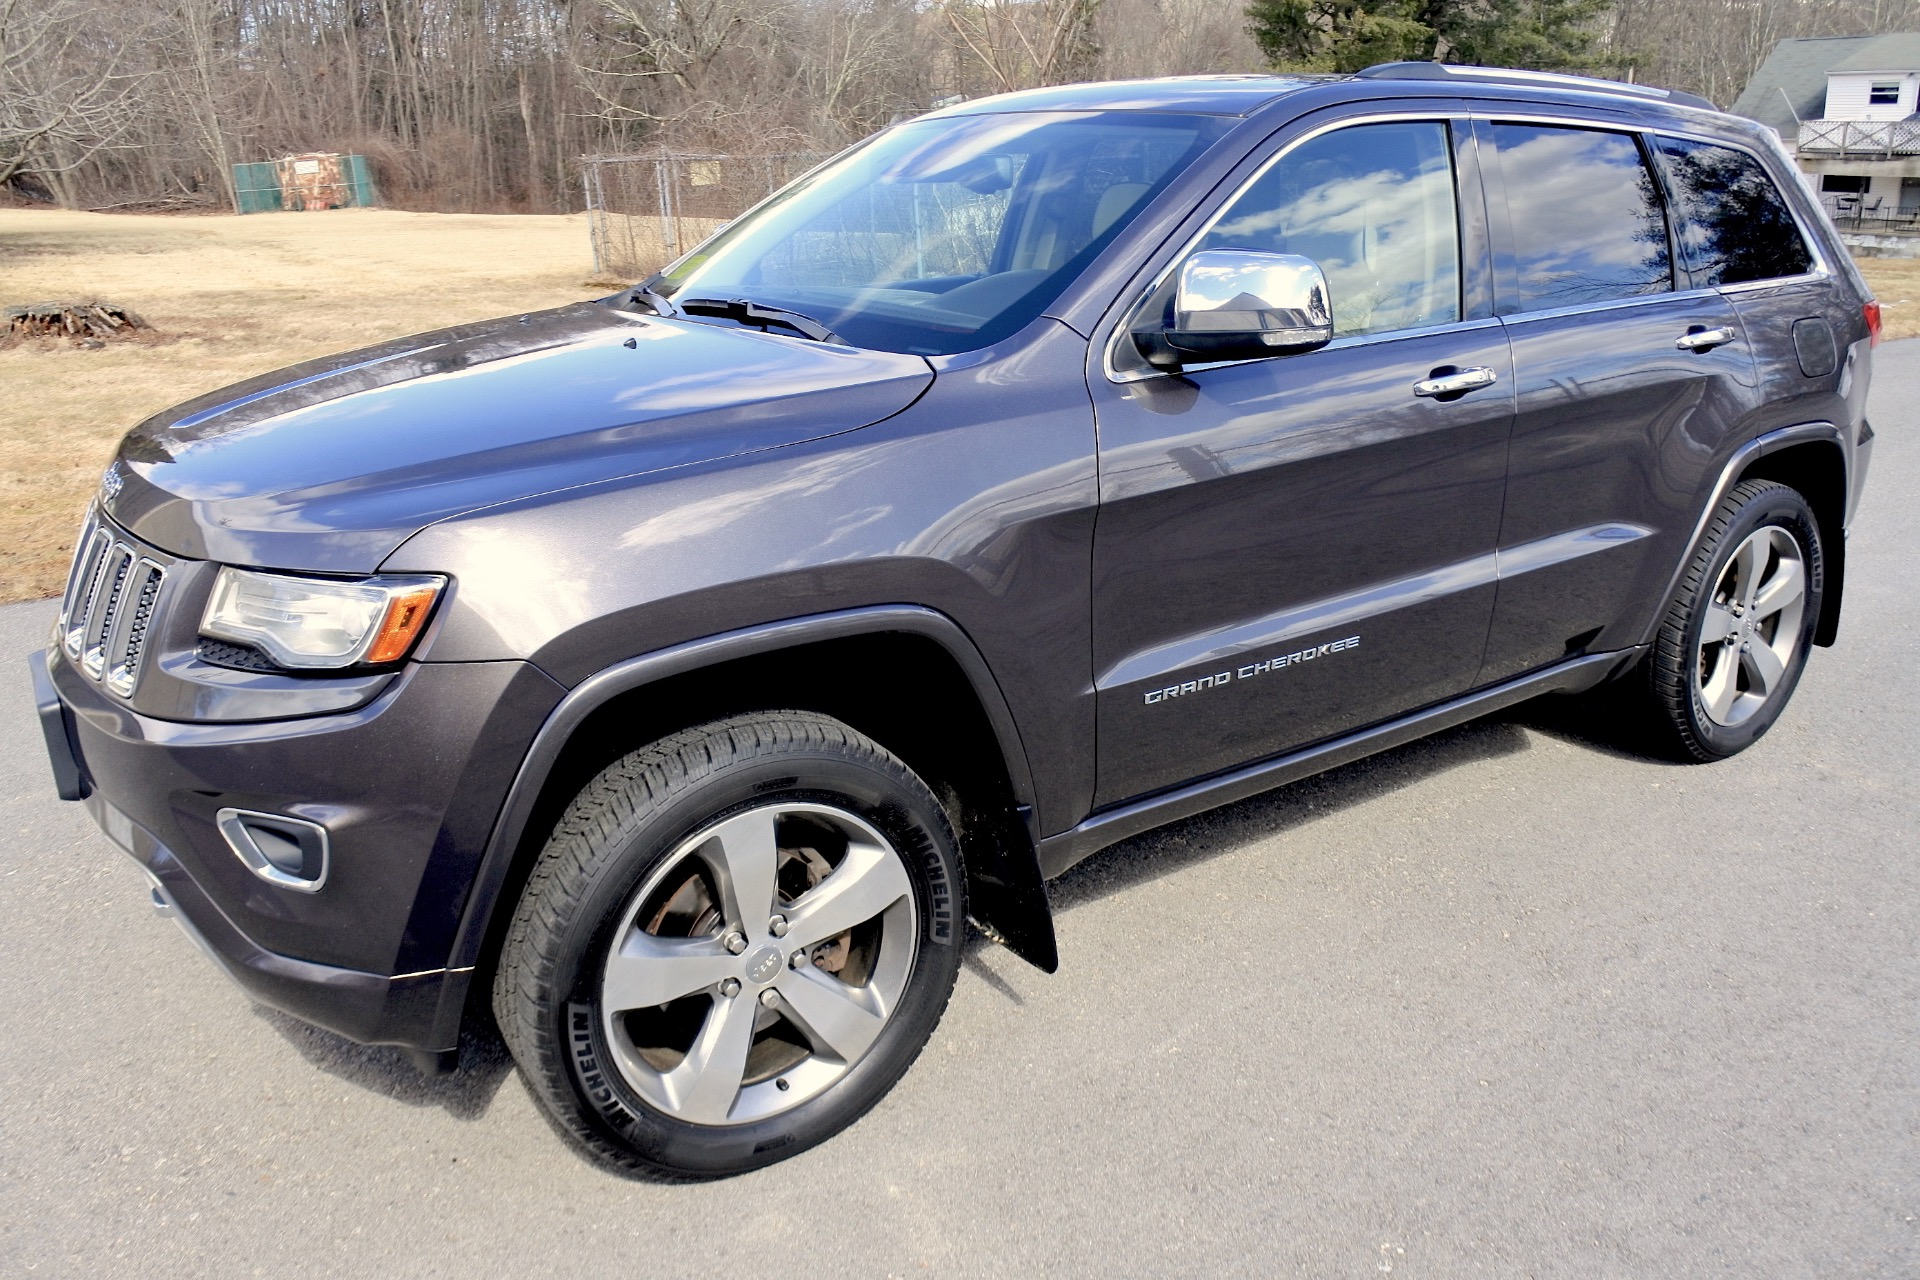 Used 2014 Jeep Grand Cherokee 4WD 4dr Overland Used 2014 Jeep Grand Cherokee 4WD 4dr Overland for sale  at Metro West Motorcars LLC in Shrewsbury MA 1